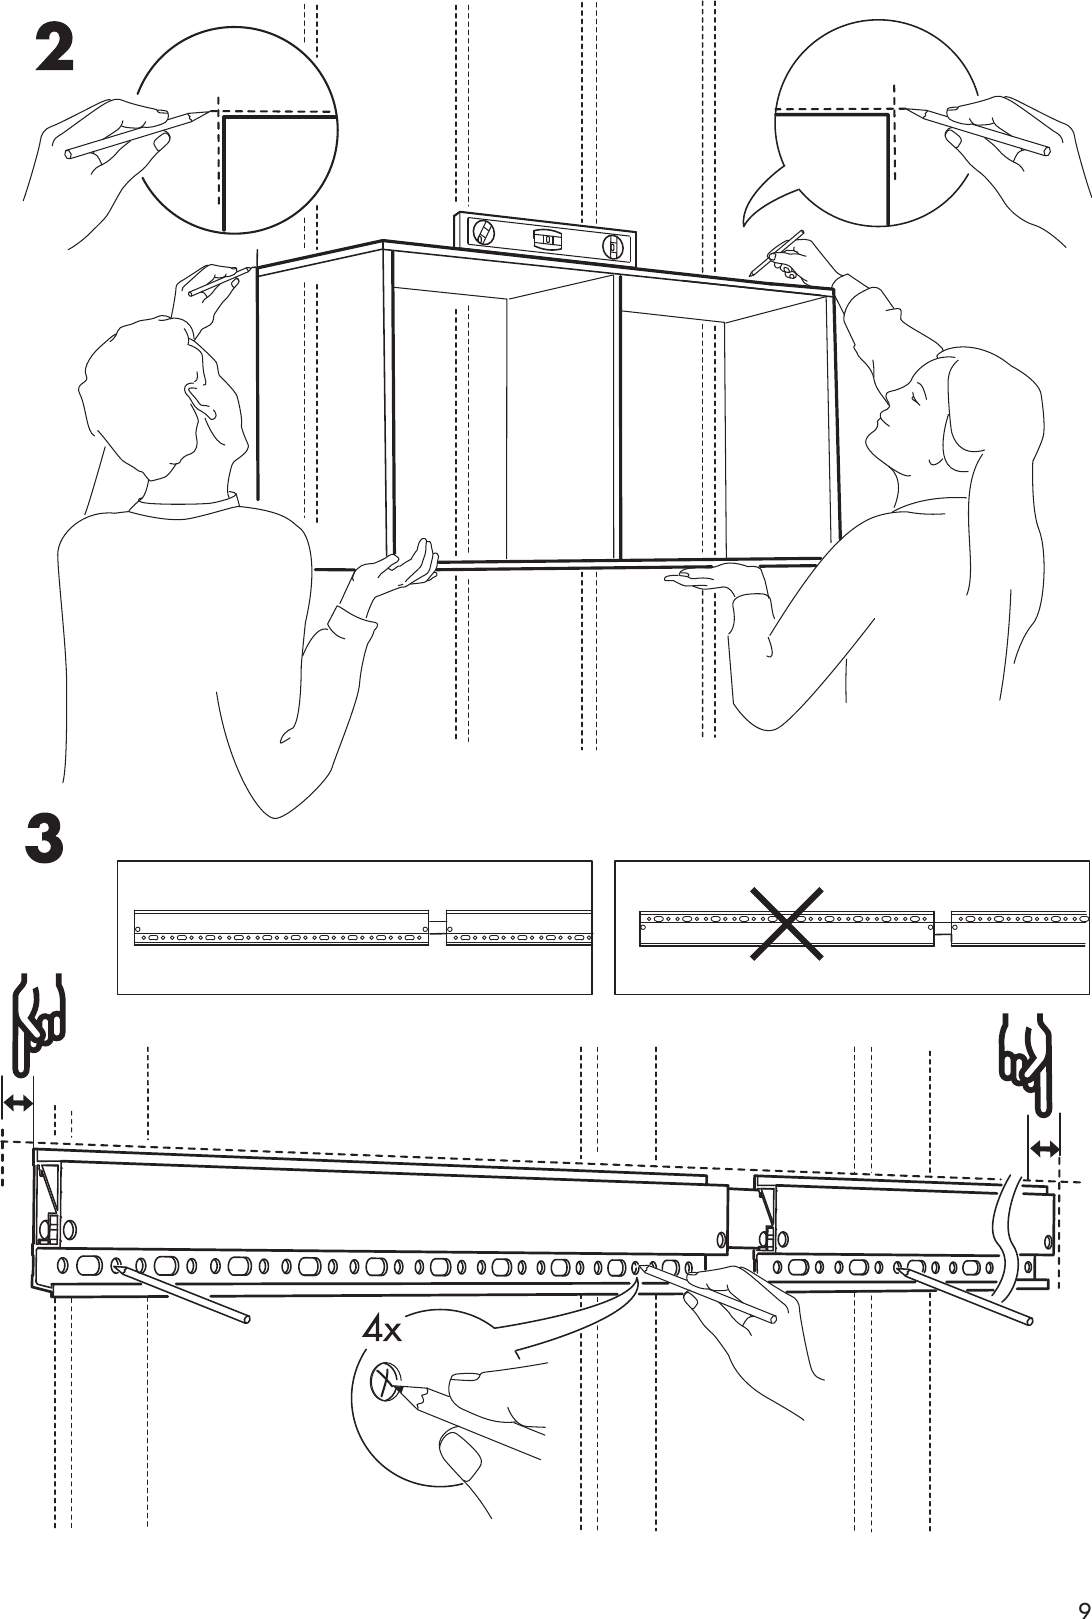 Ikea Besta Suspension Rail 23 5 8 Assembly Instruction